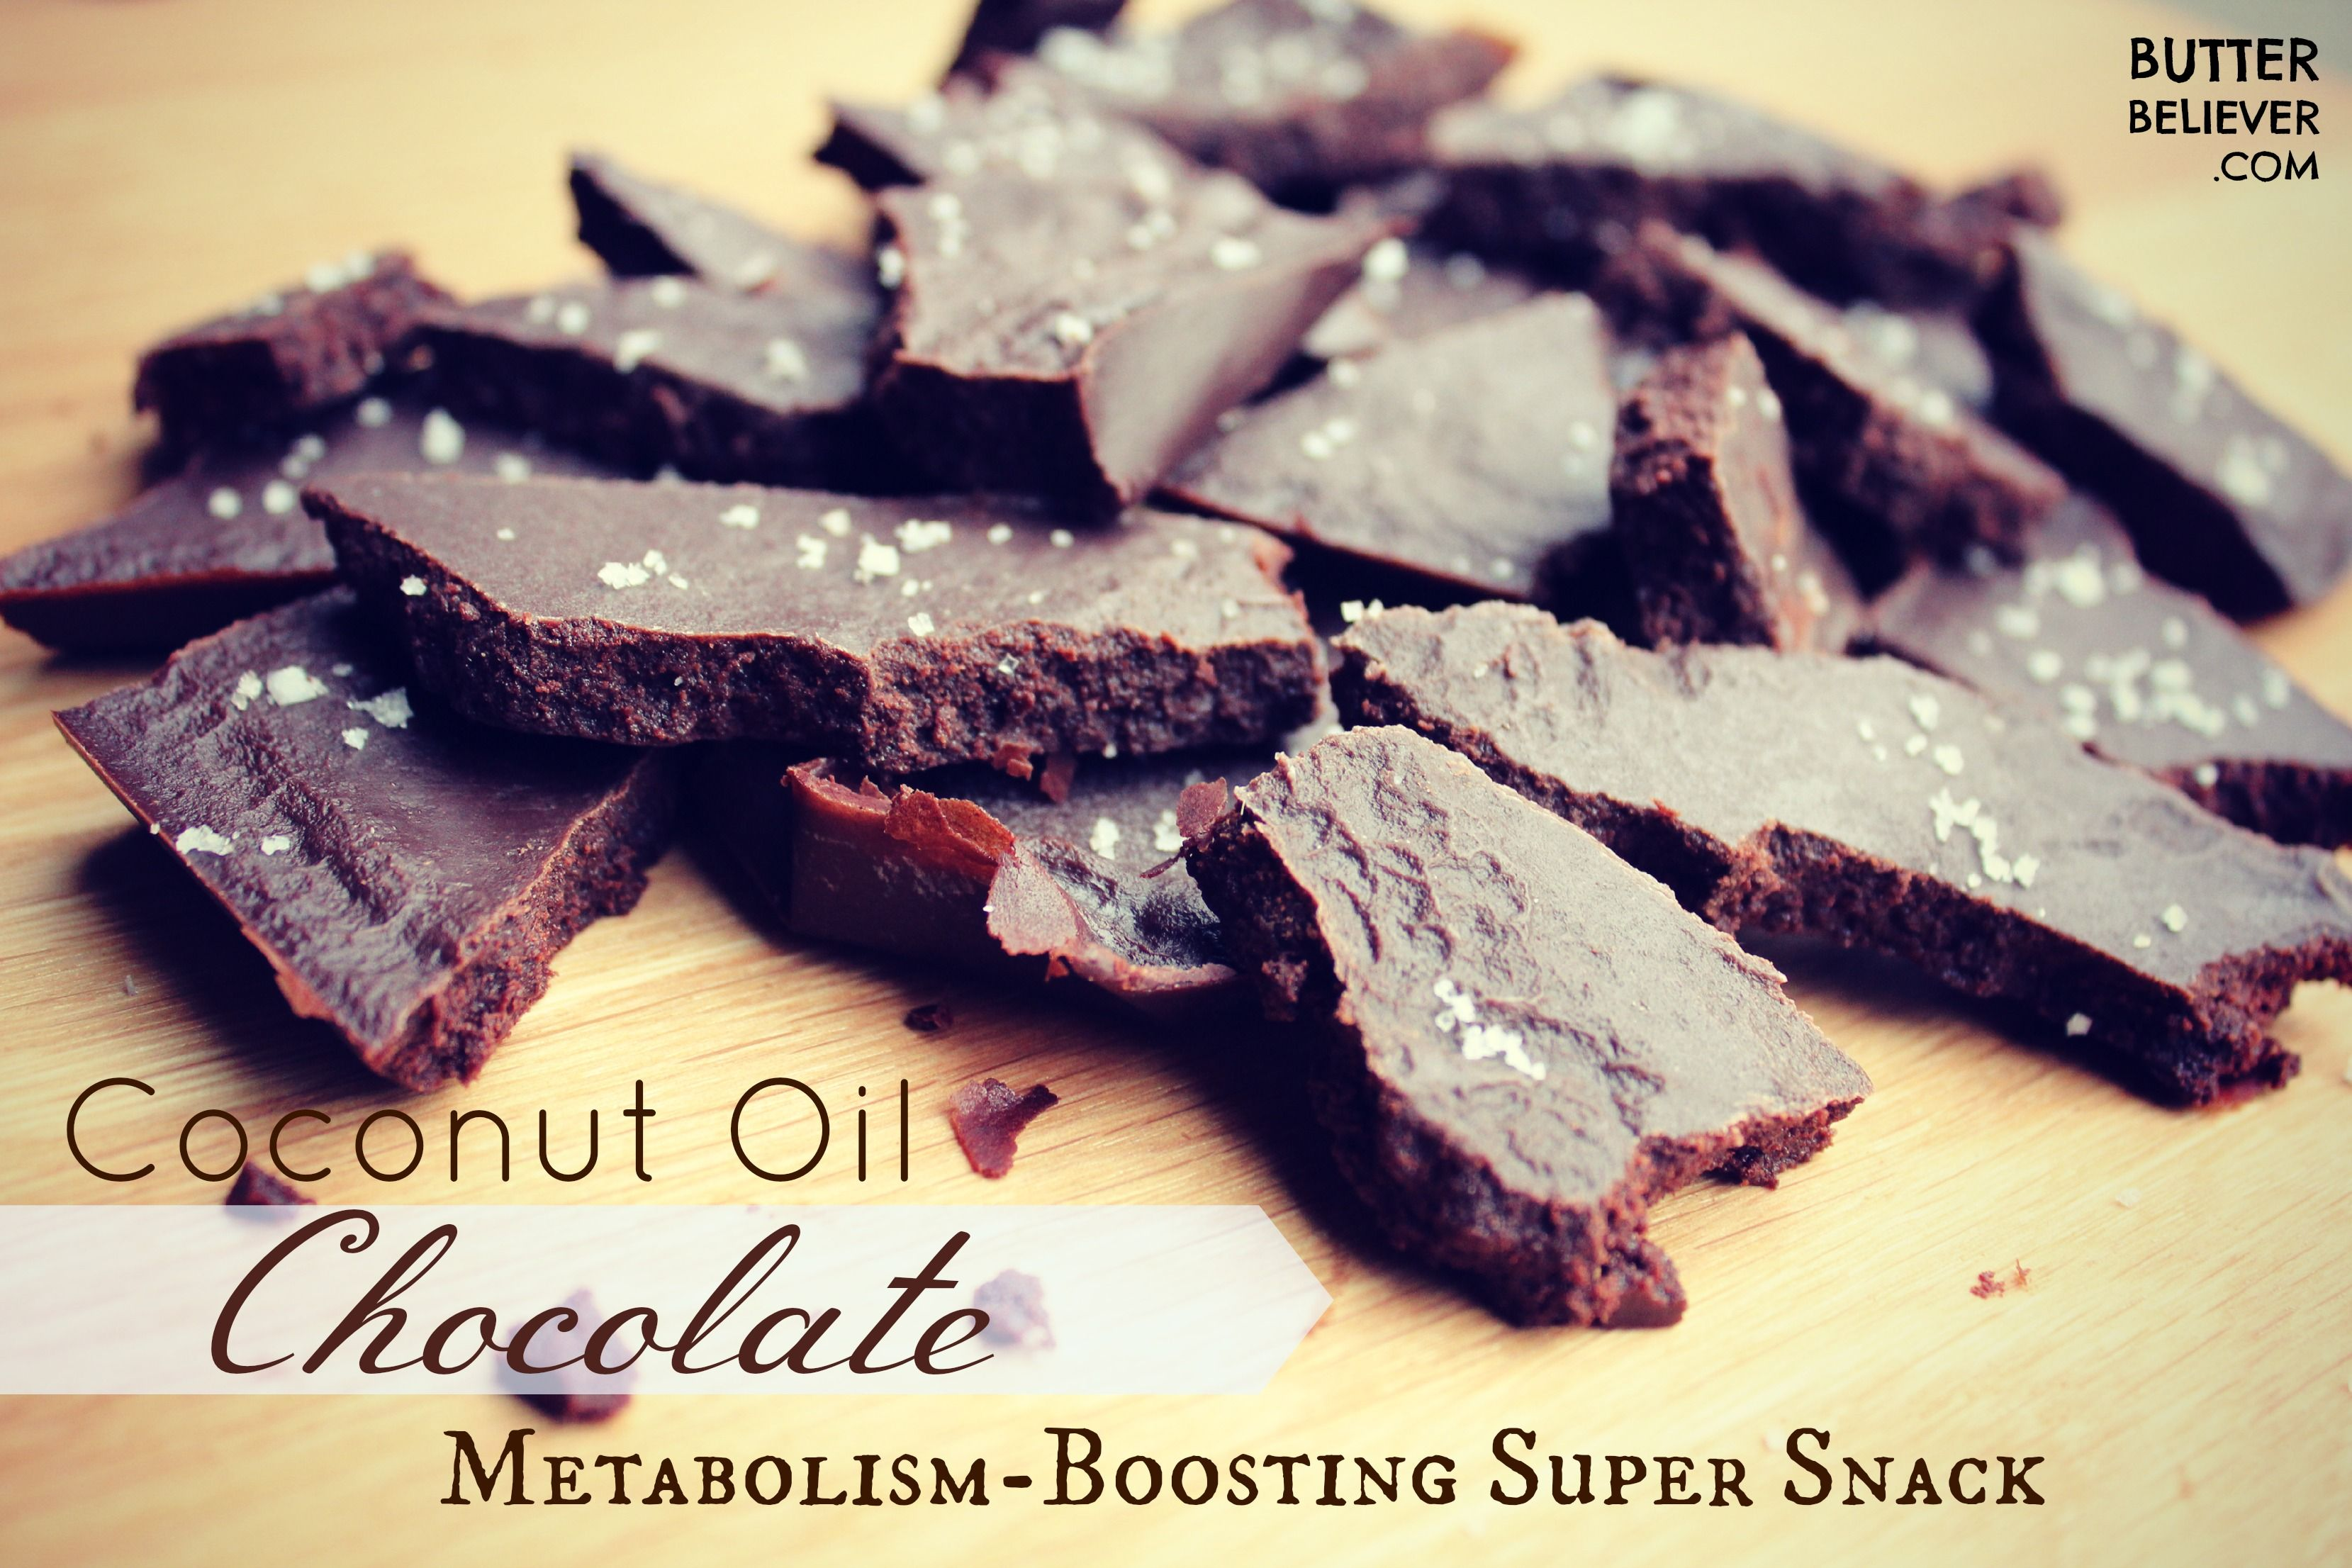 Homemade Dark Chocolate Made With Coconut Oil Boosts Your